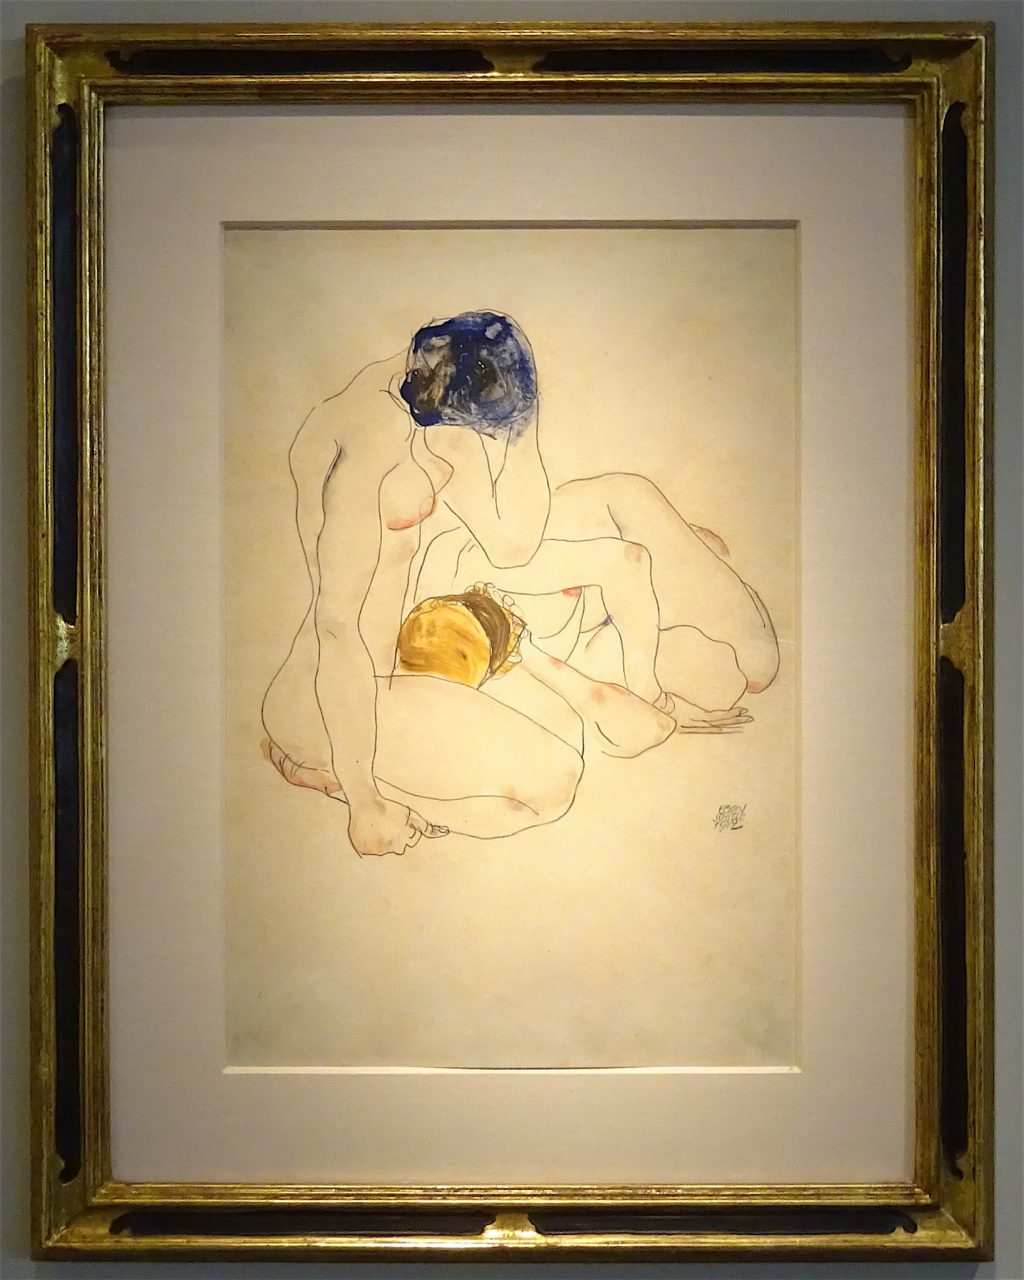 """Egon Schiele """"Two Friends"""" 1912, Gouache, watercolour and pencil on paper, 44.4 x 30.2 cm, Signed and dated 'Egon Schiele 1912', lower right @ Richard Nagy"""